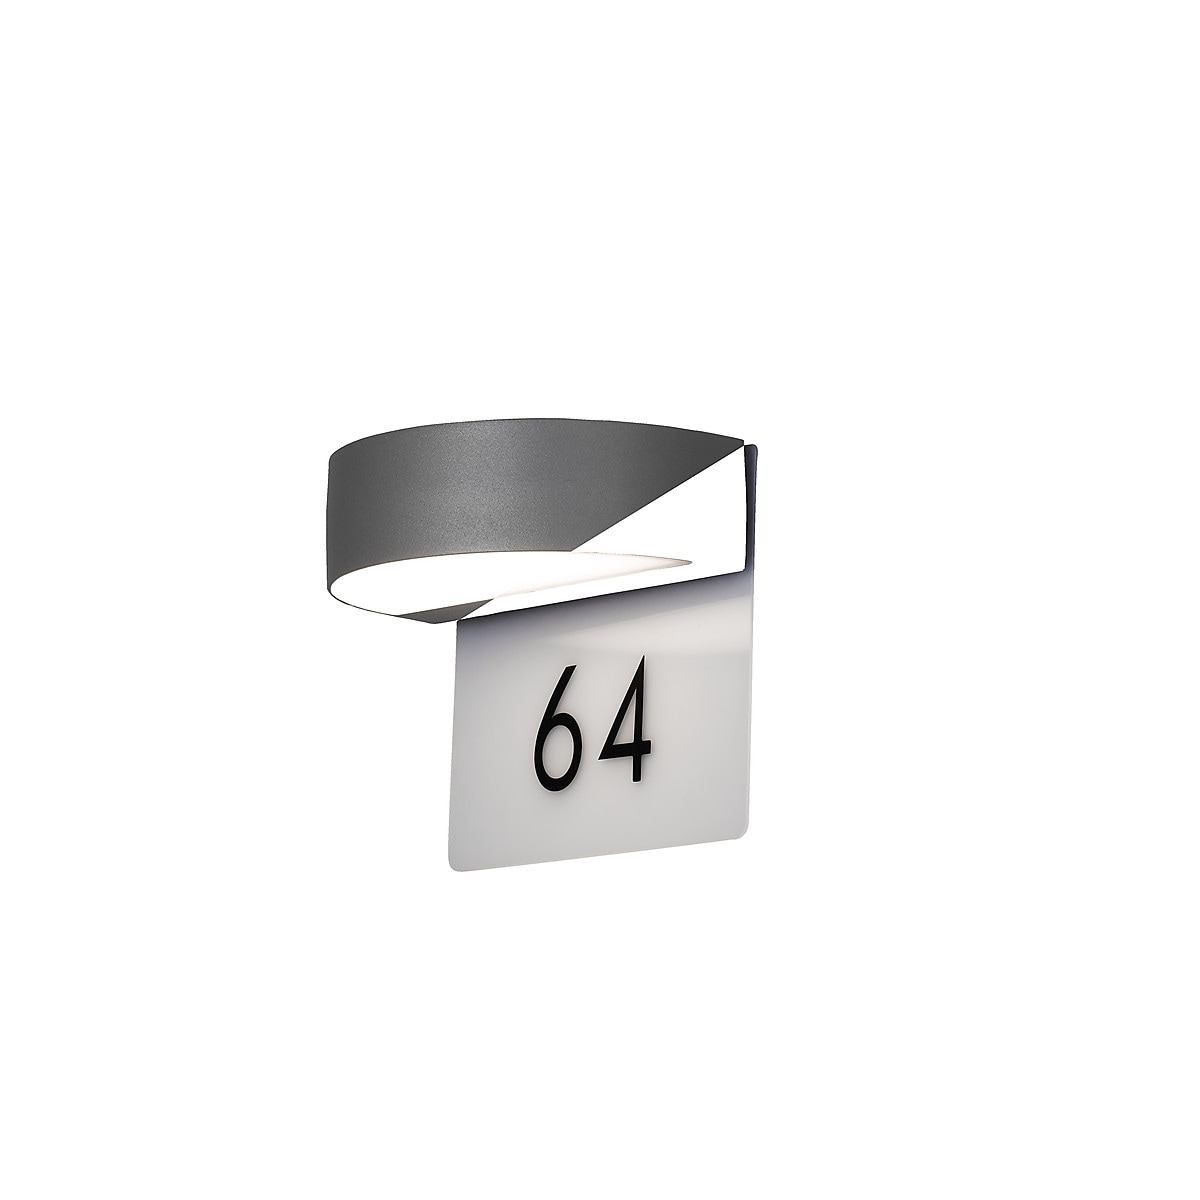 Konstsmide Monza LED Wall Light with House Numbers